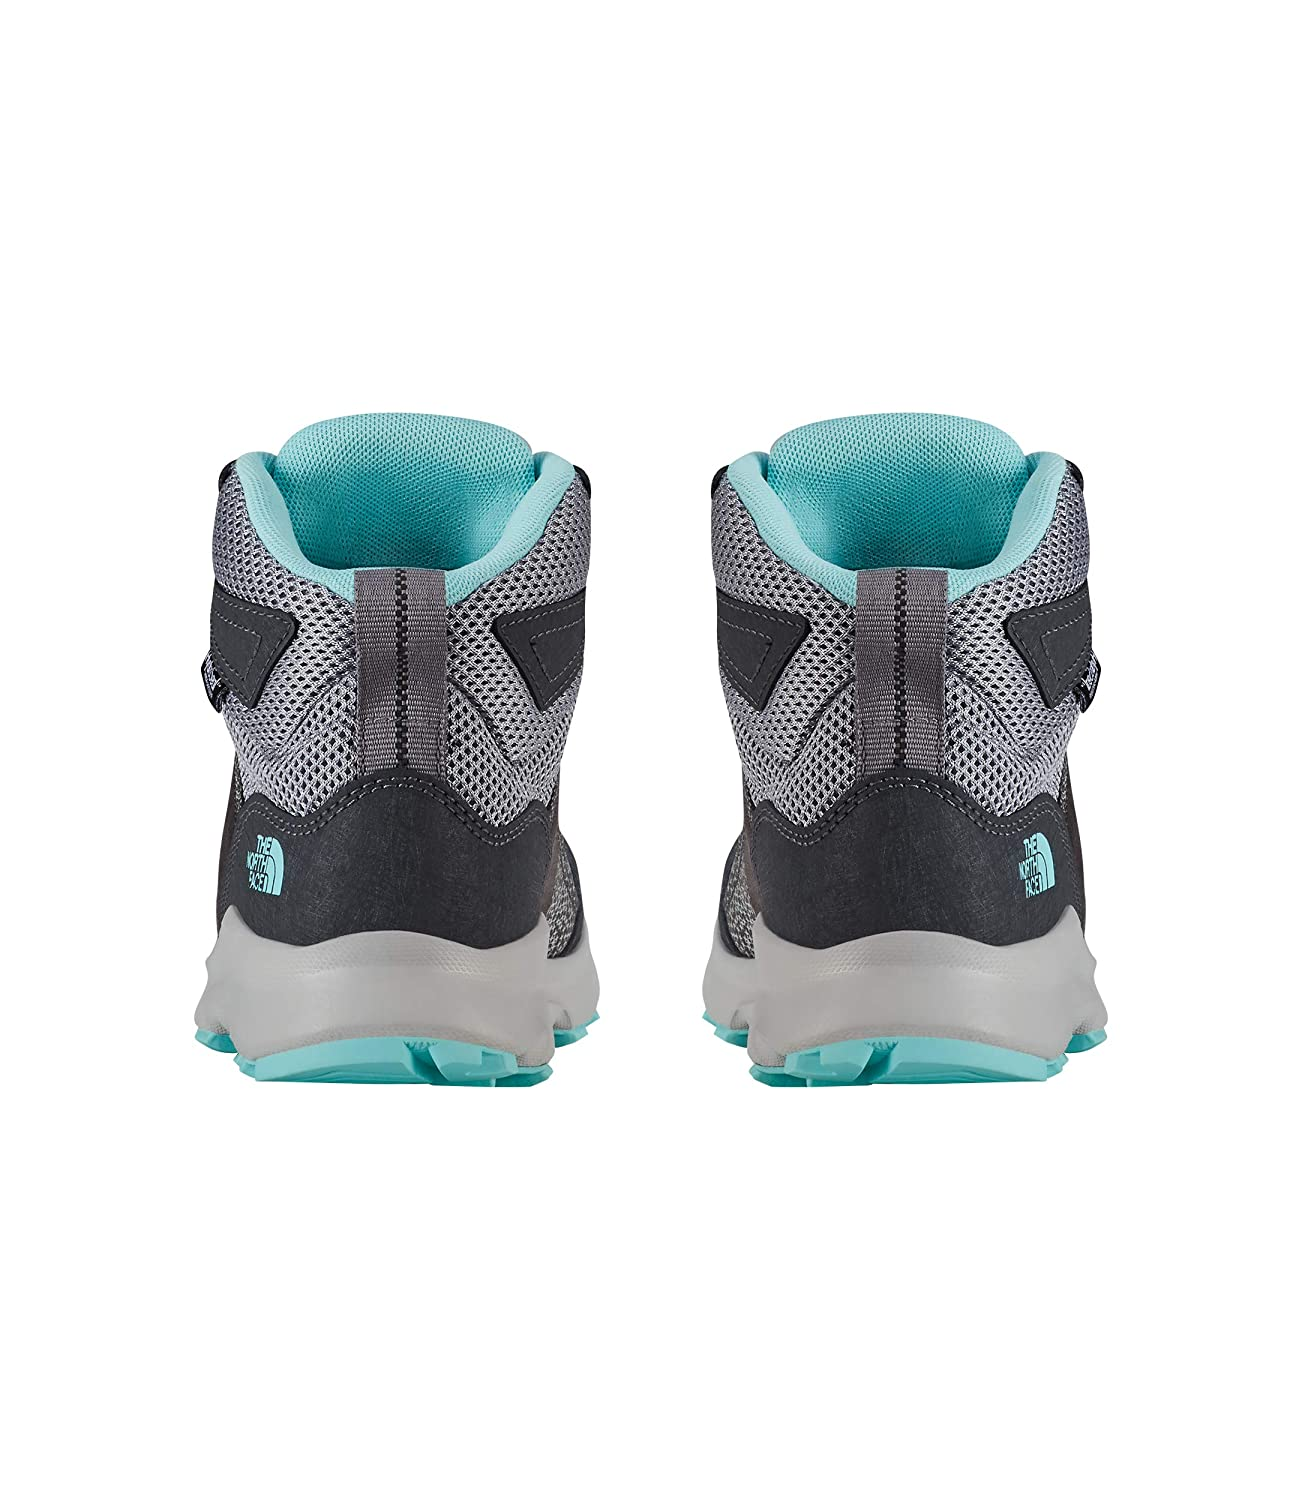 The North Face Jr Hedgehog Hiker II Mid WP The North Face Kids